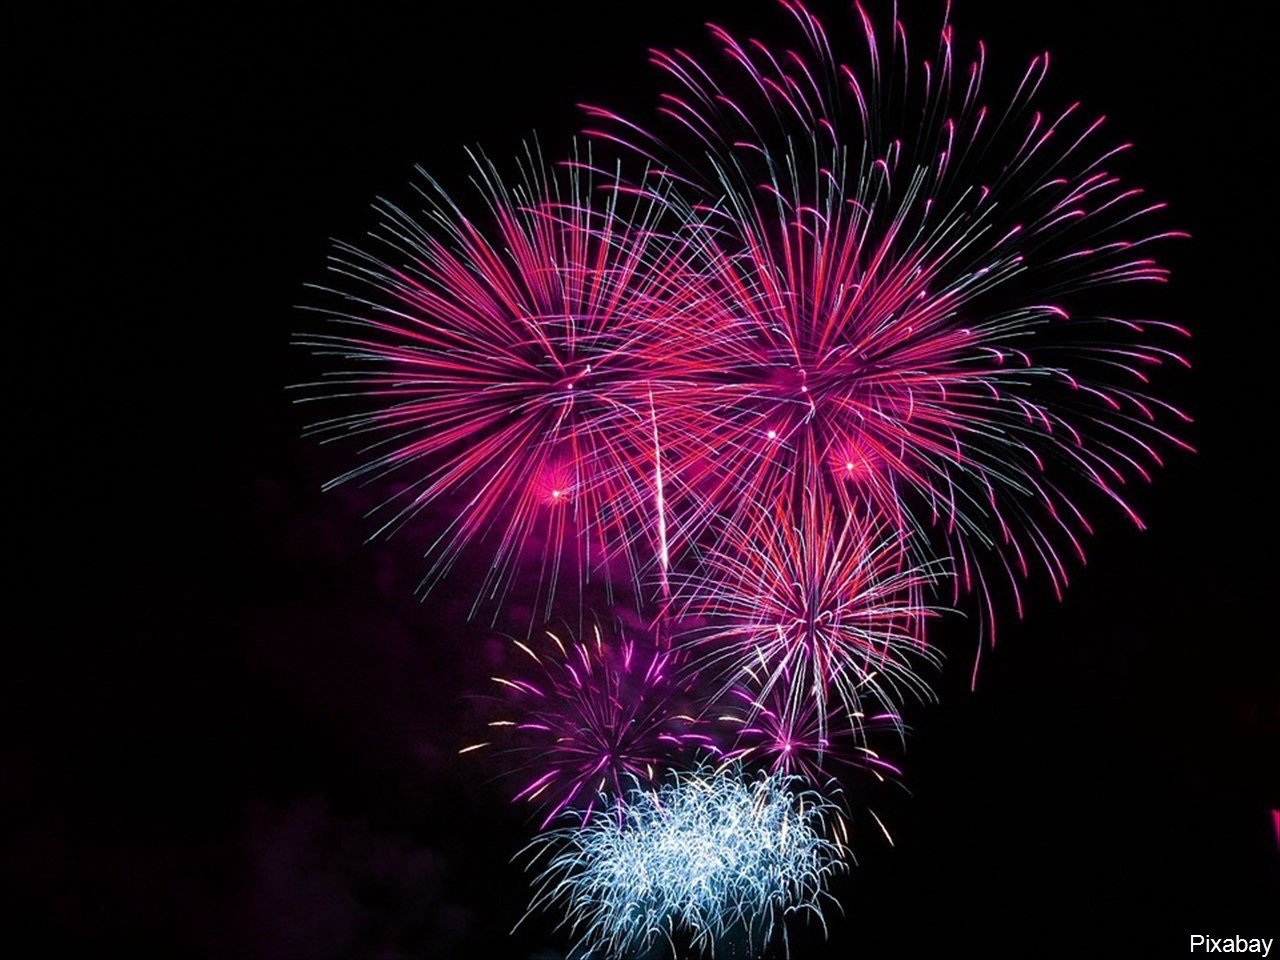 When and where to see fireworks this Fourth of July - KNBN